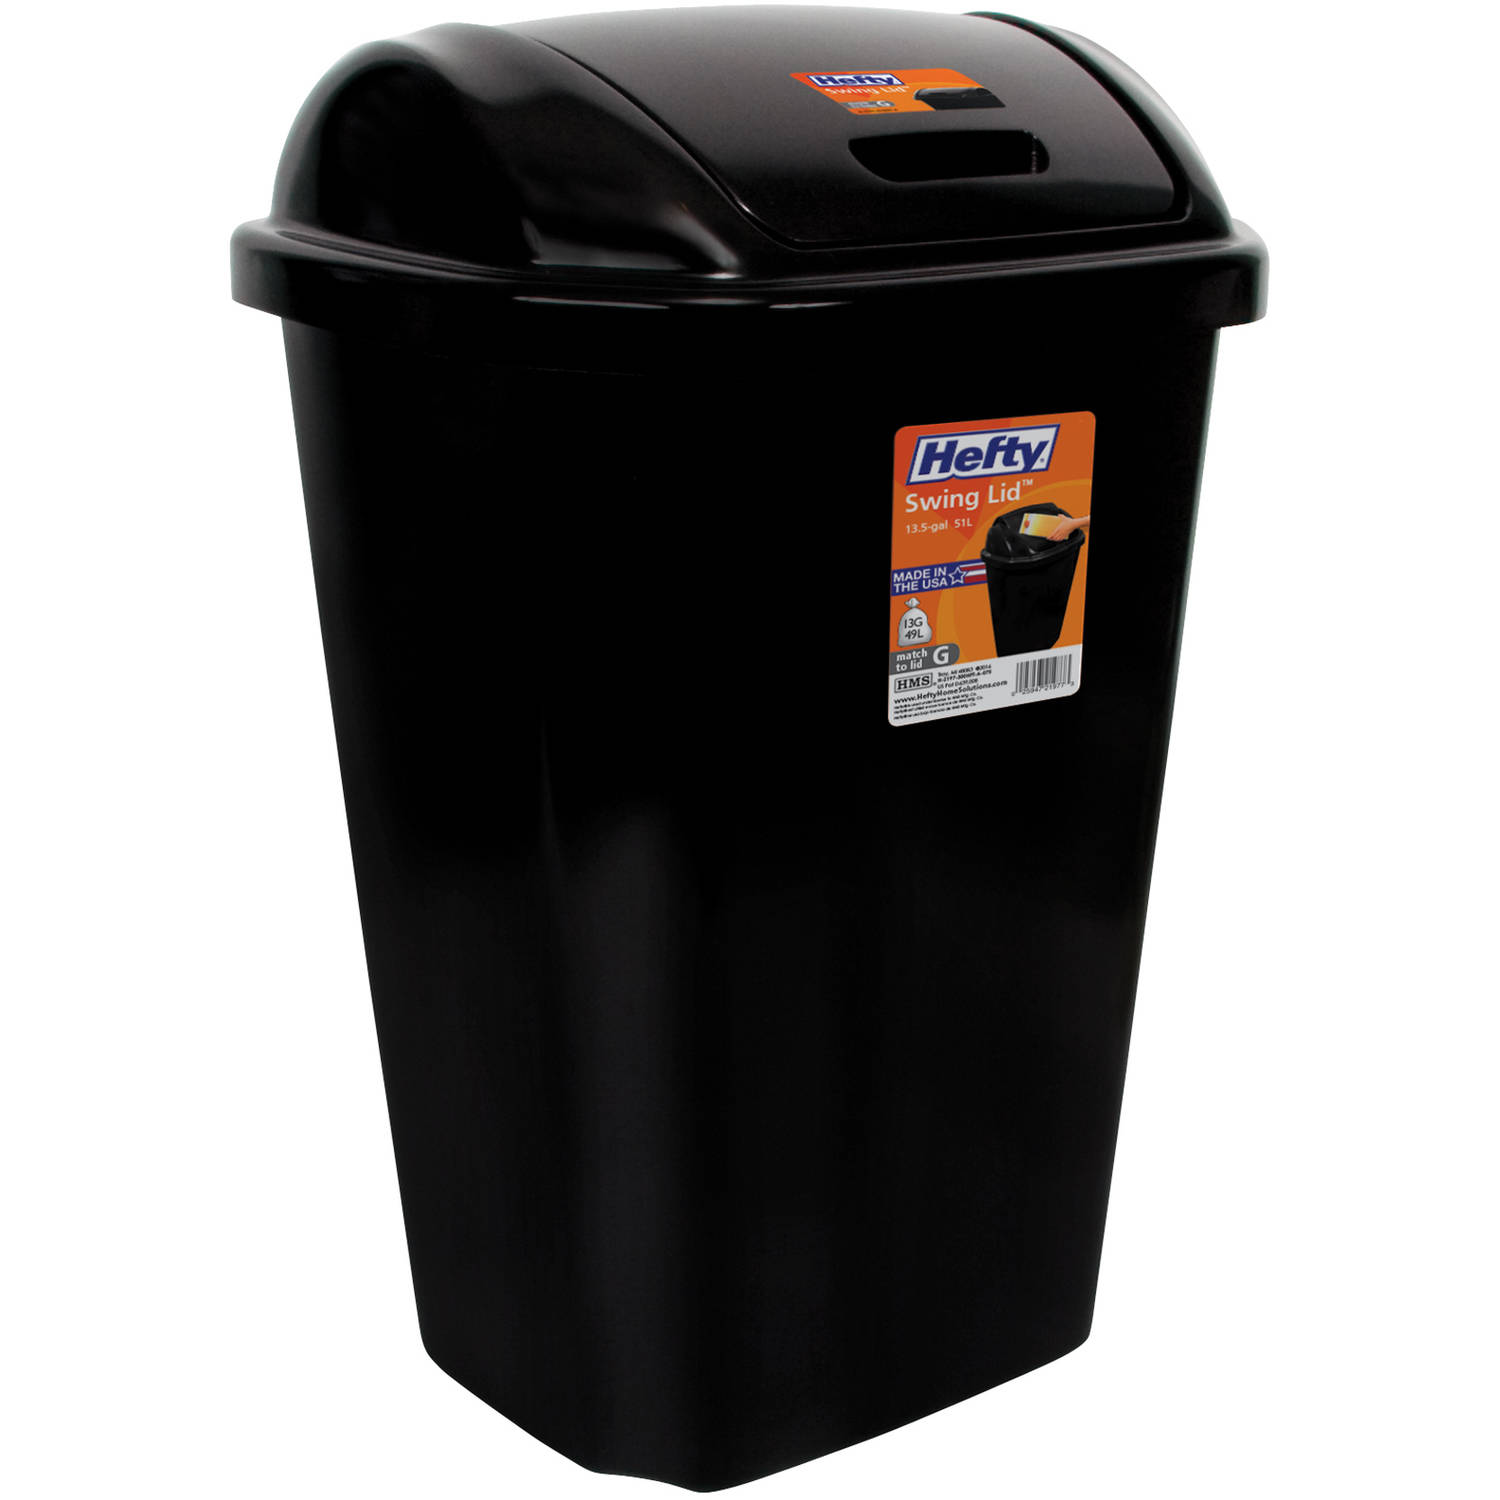 Hefty Swing-Lid 13.5 Gal Trash Can, Black Image 1 of 1